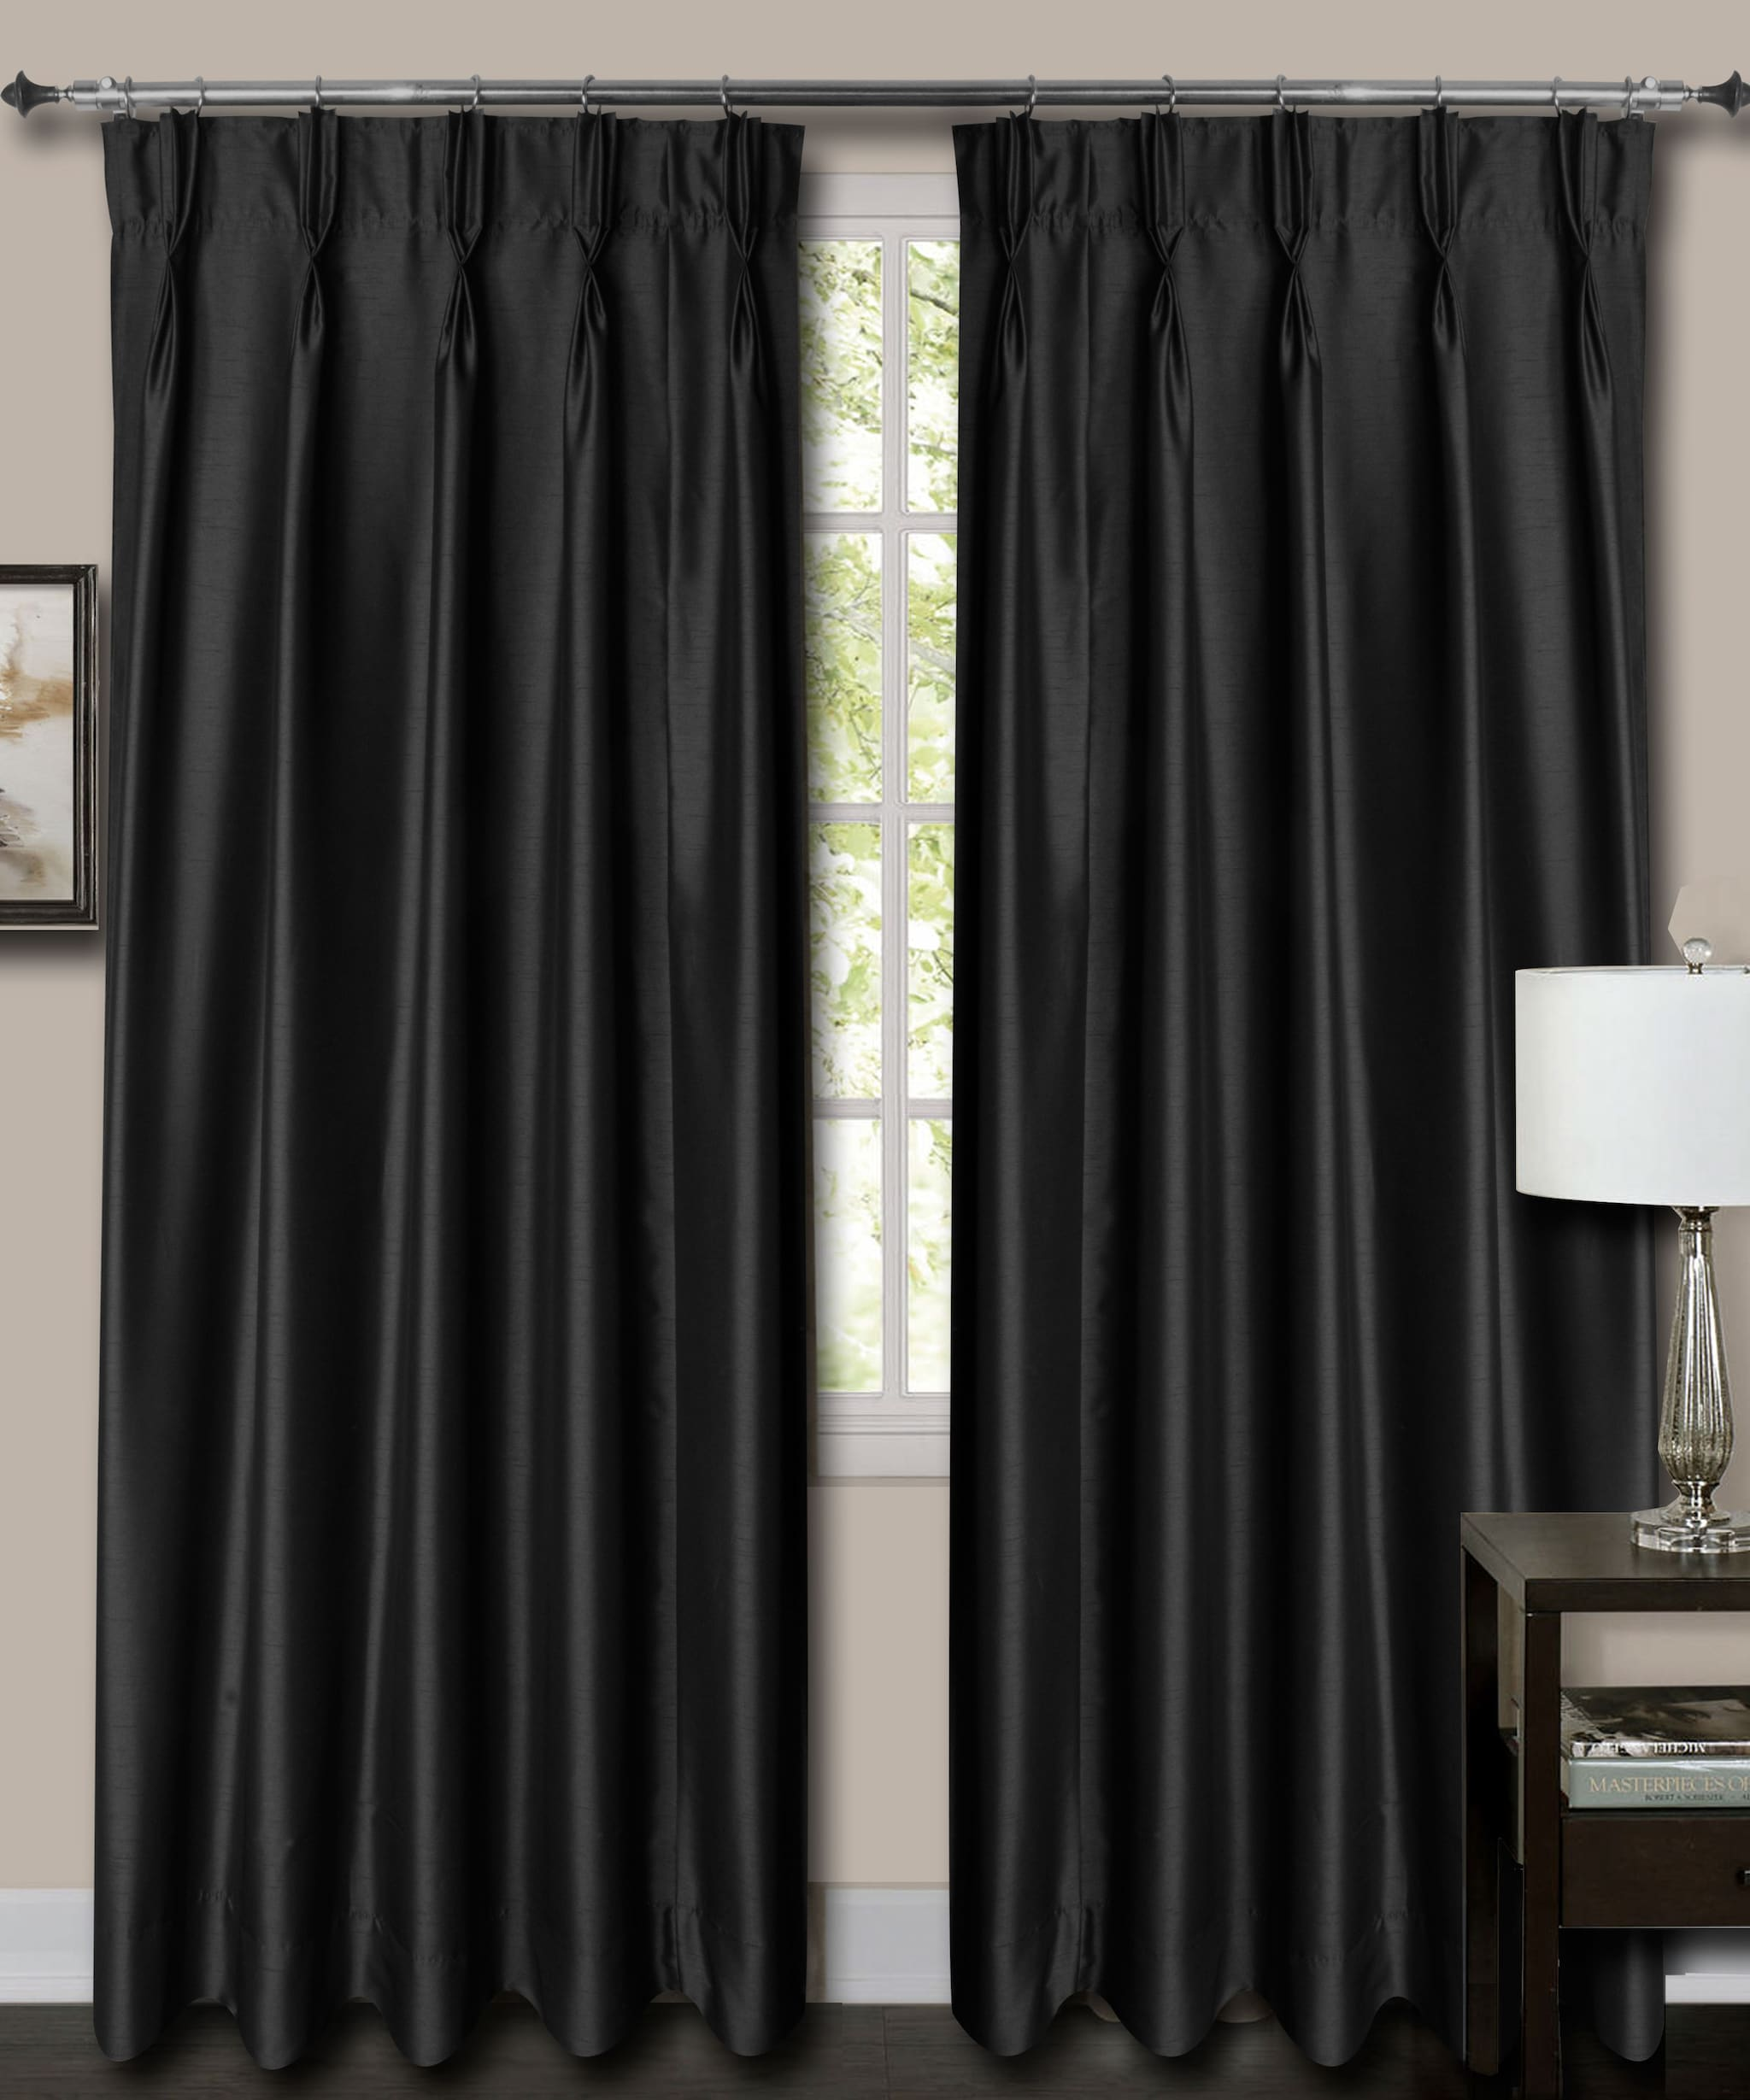 "French Pleat Top Black Faux Silk Dupioni Curtains. (65"" Wide,5 Feet Long,Without Lining)"